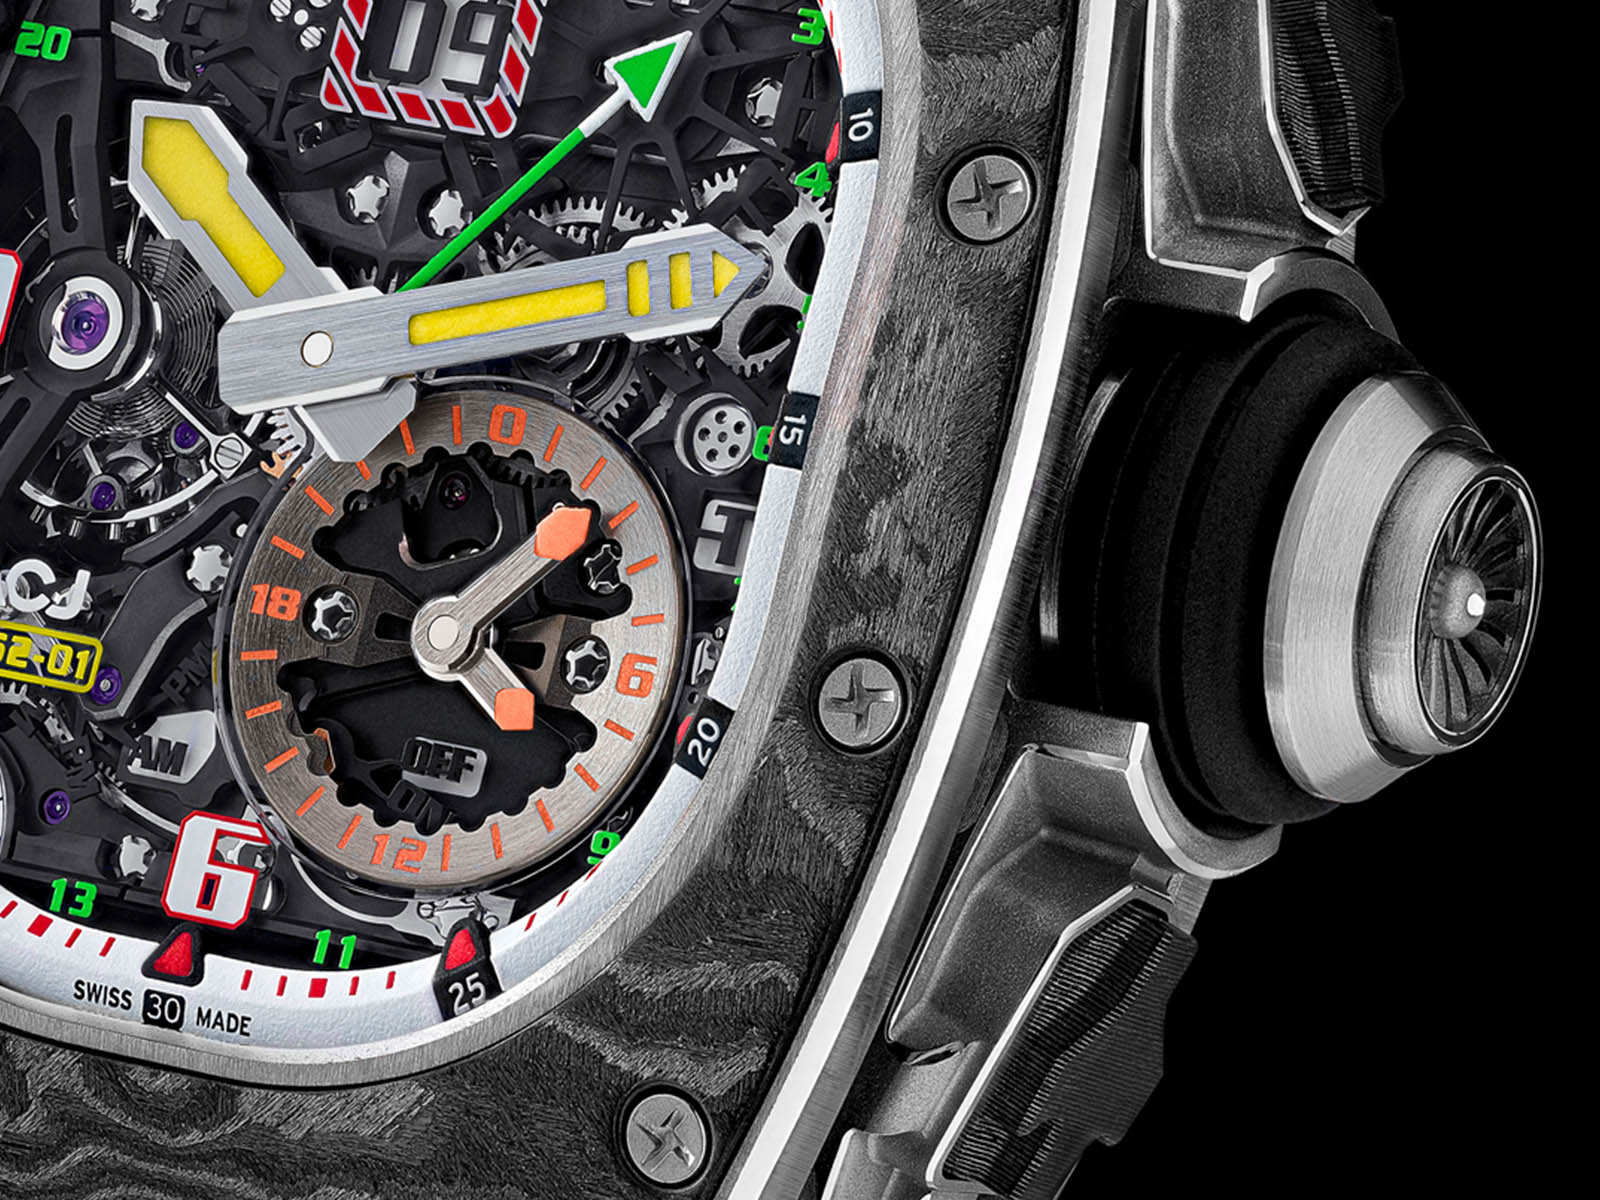 richard-mille-rm-62-01-tourbillon-vibrating-alarm-airbus-corporate-jets-5.jpg